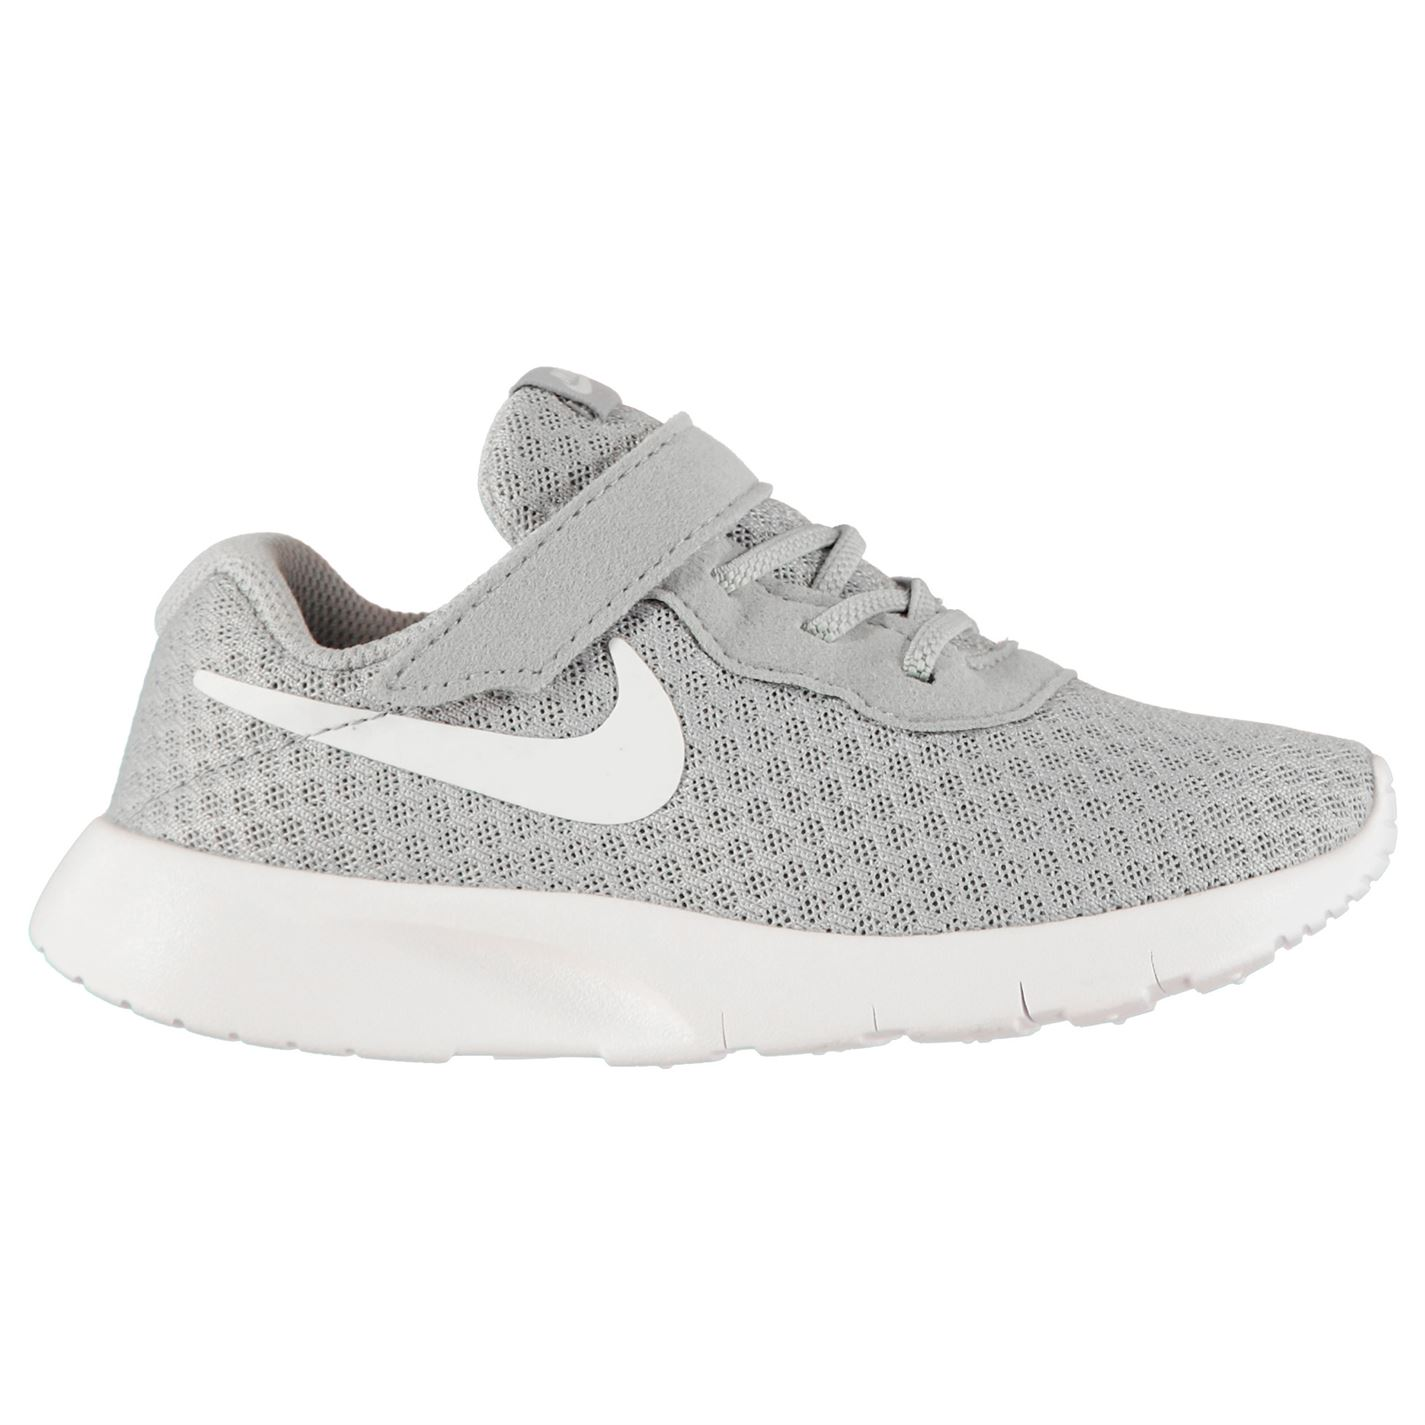 Nike Tanjun Trainer Infant Boys Grey/White